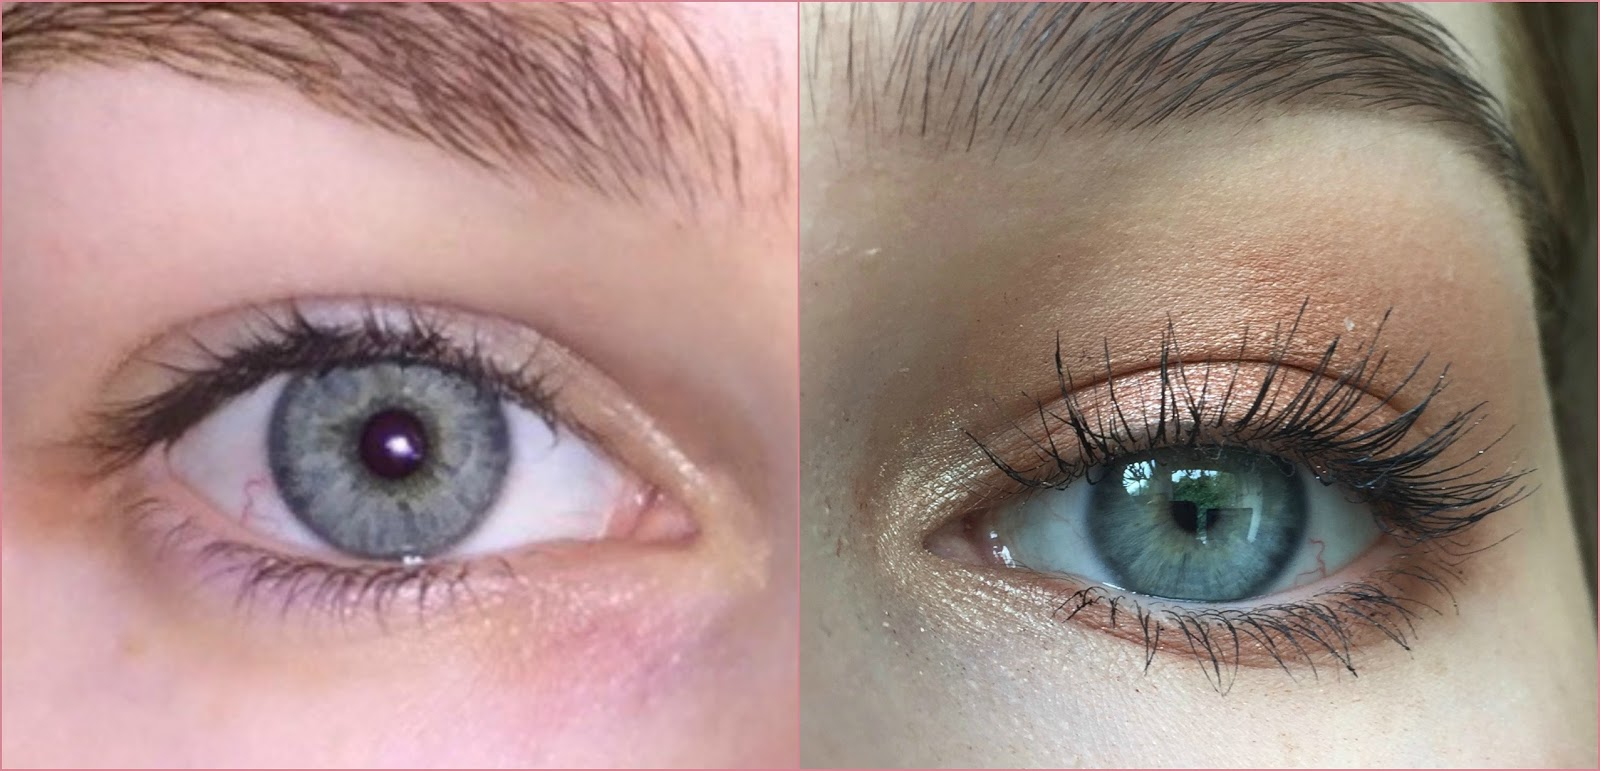 LVL LASHES REVIEW, BEFORE AND AFTER MASCARA